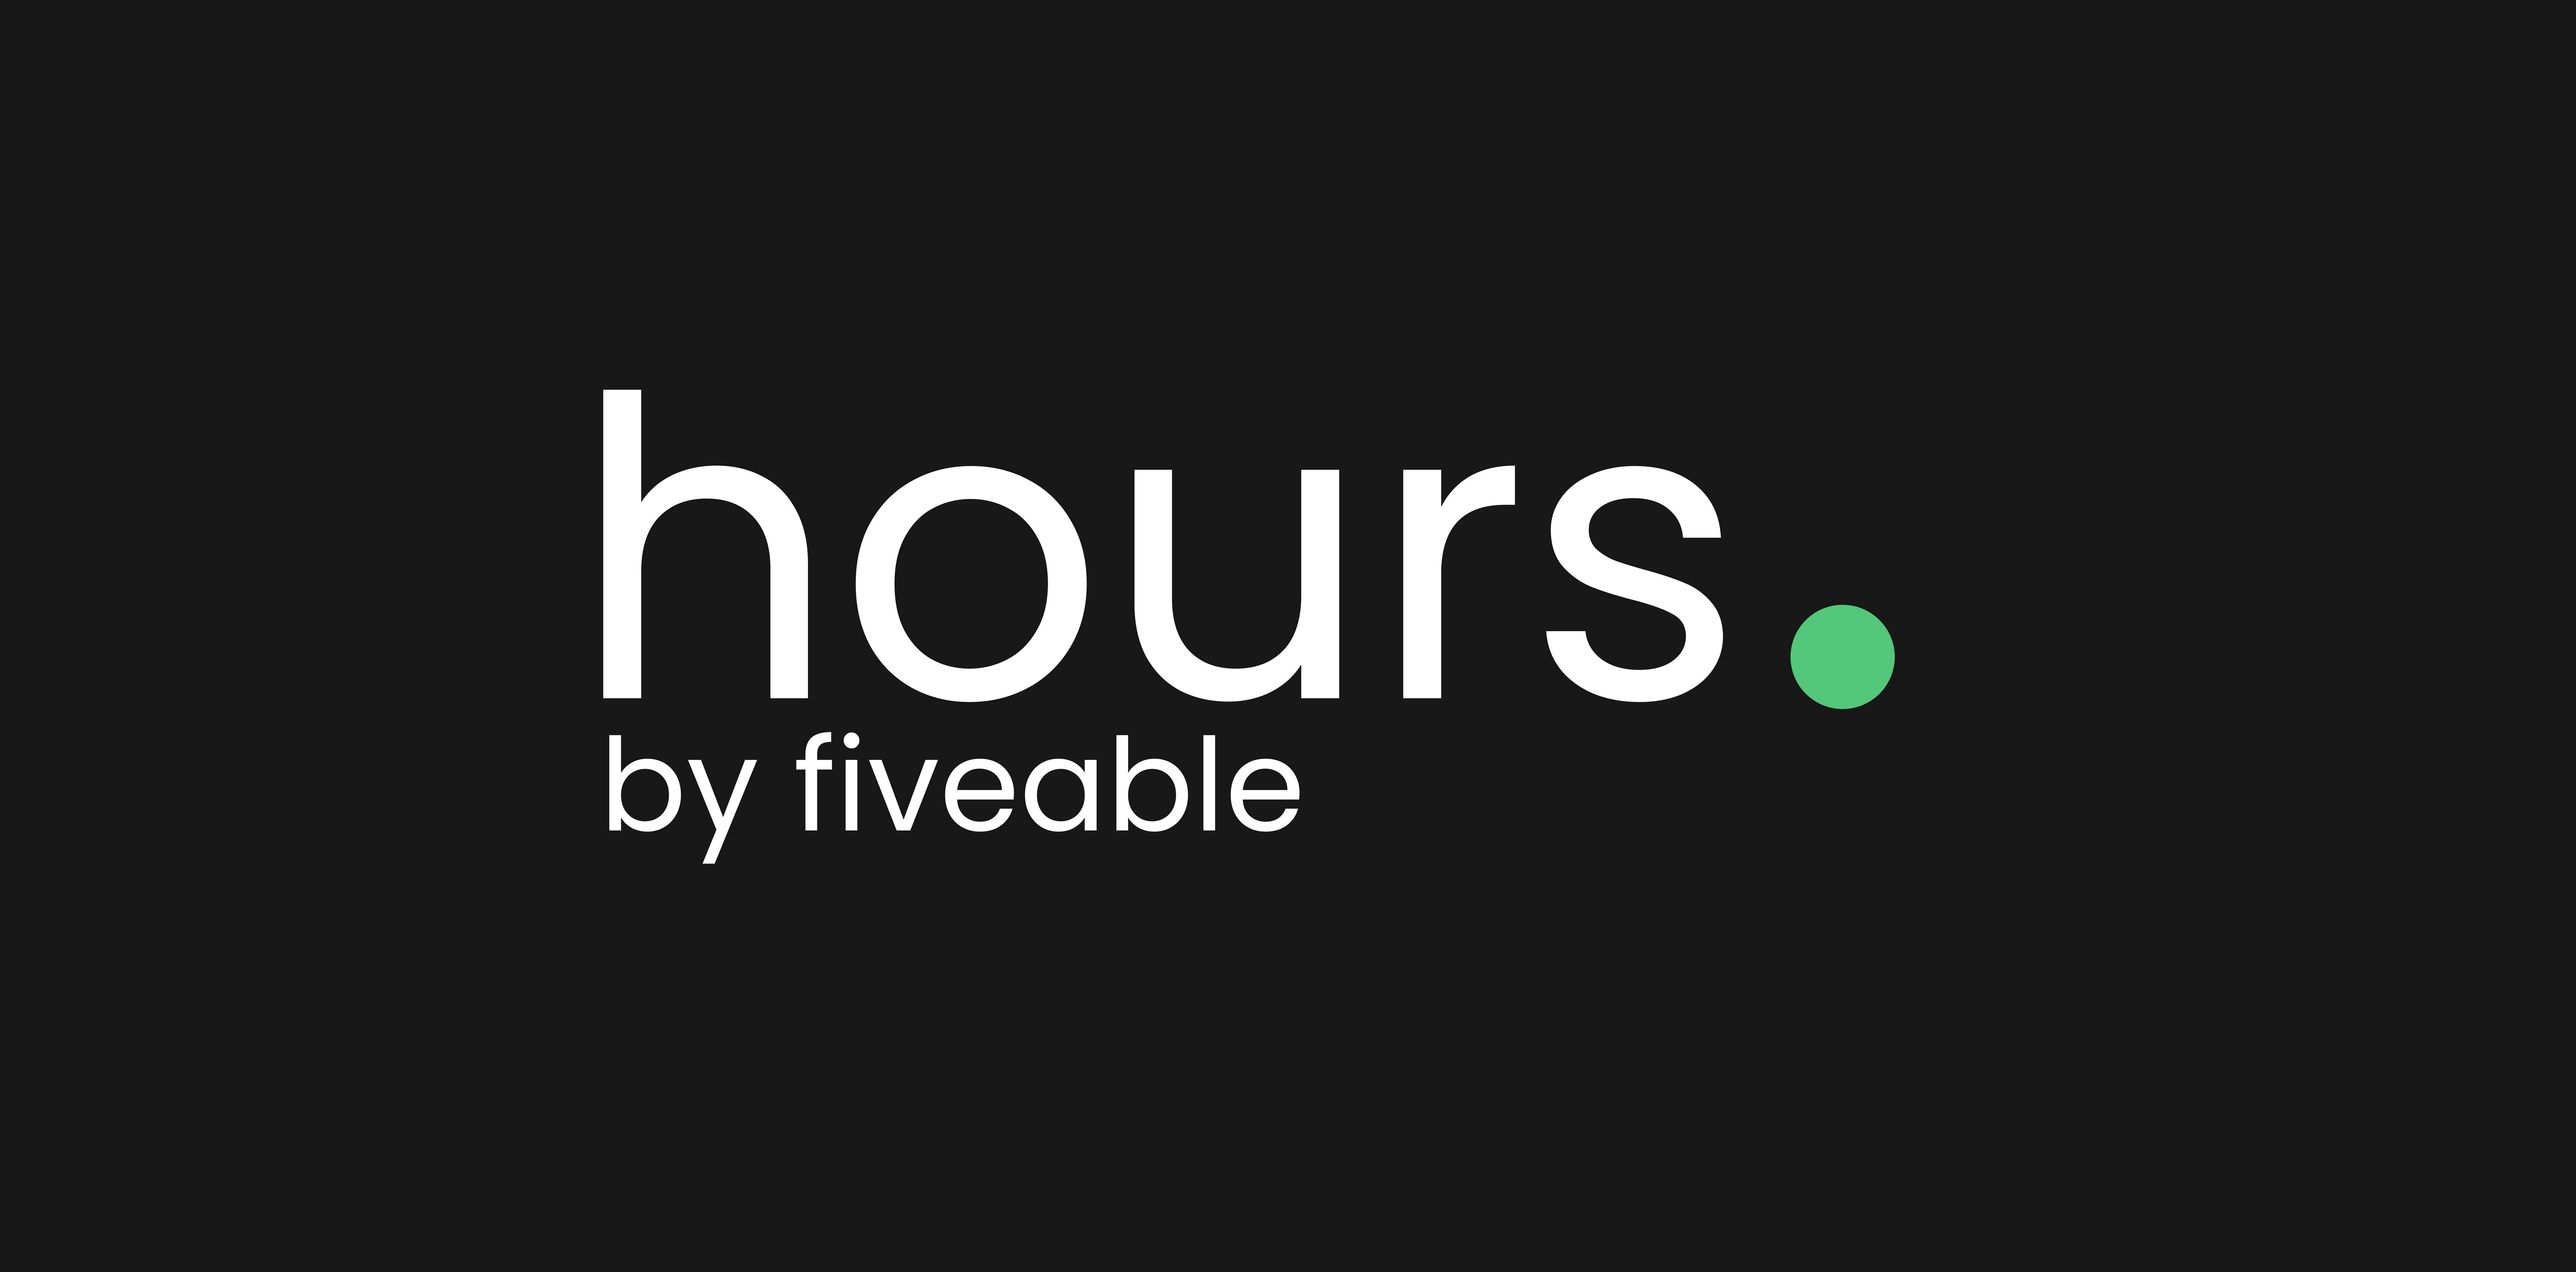 Fiveable acquires Hours to bring virtual study rooms to students